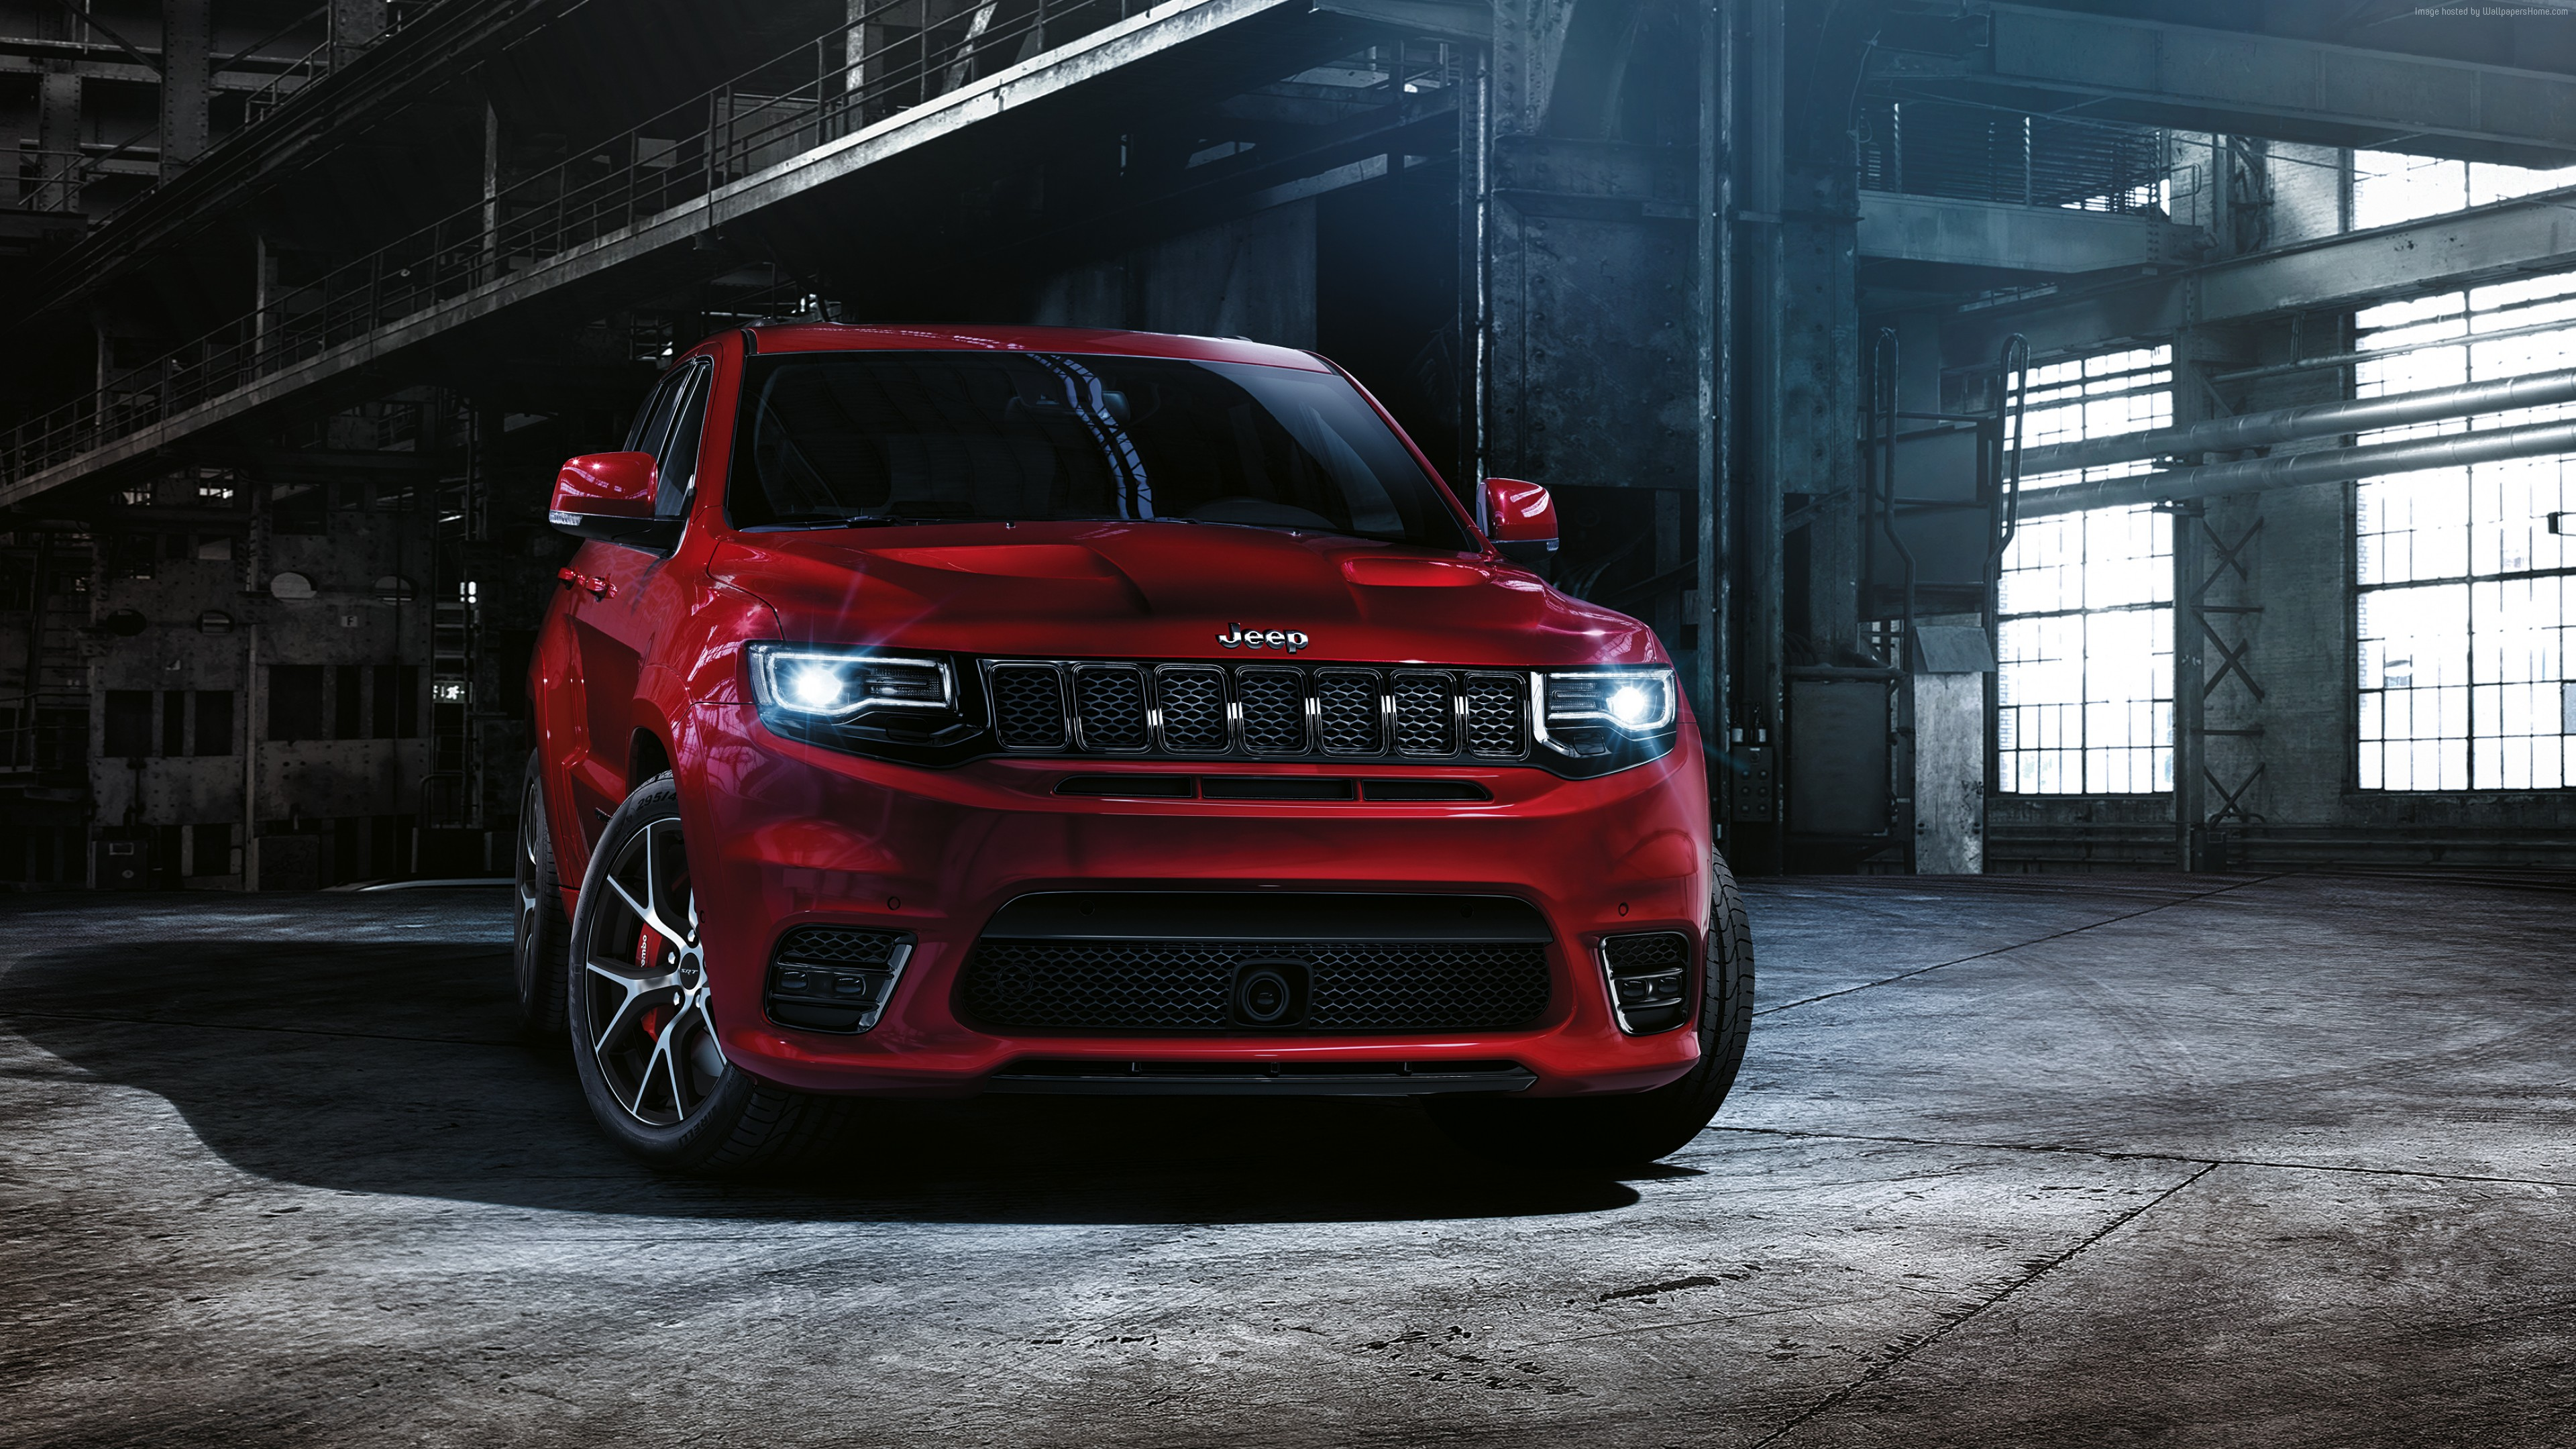 Jeep Grand Cherokee Srt8 Wallpaper >> 2016 Jeep Grand Cherokee SRT, HD Cars, 4k Wallpapers ...